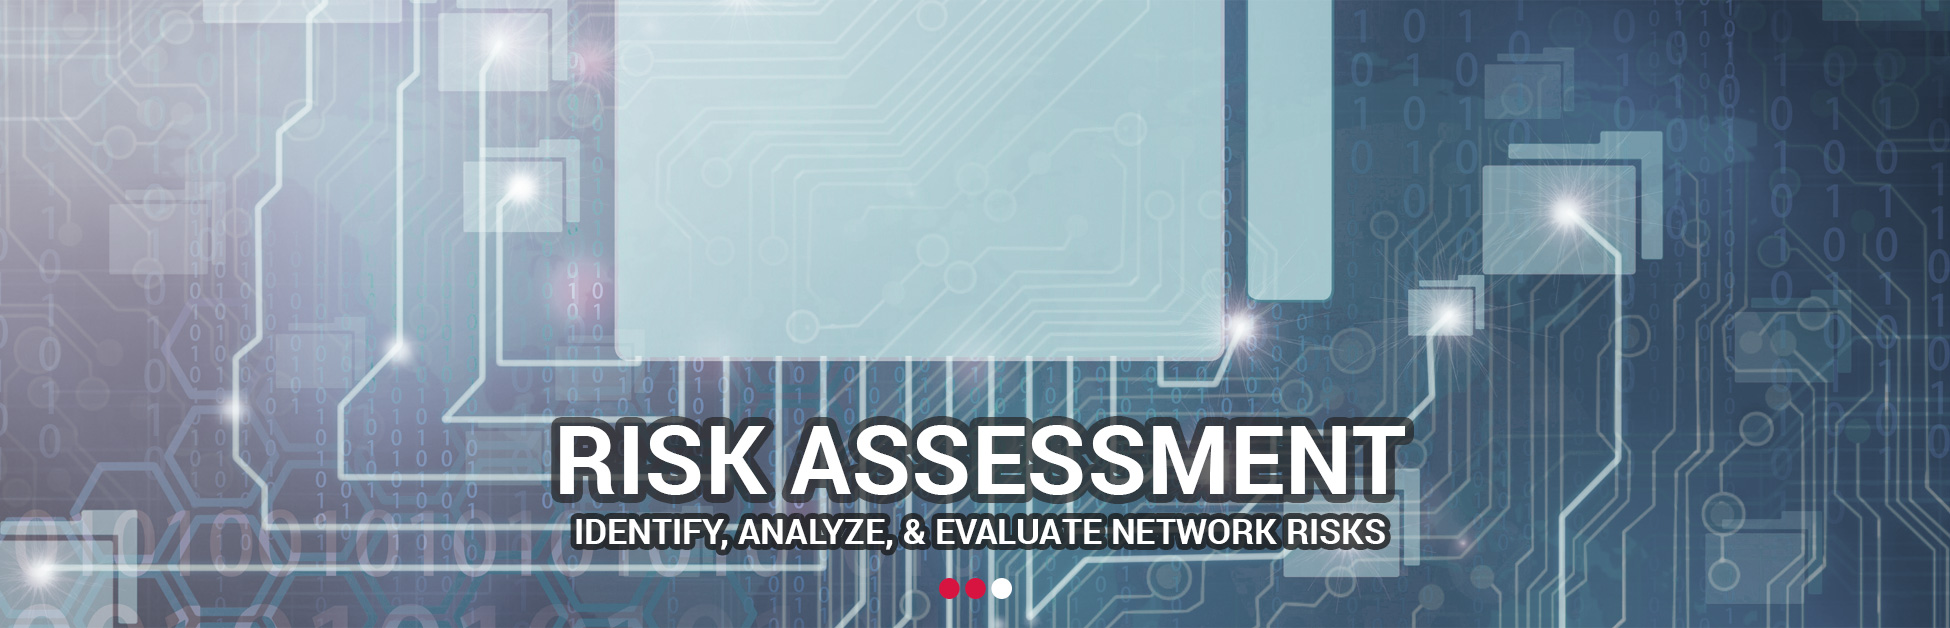 Risk Assessment - Identify, analyze, and eveluate network risks